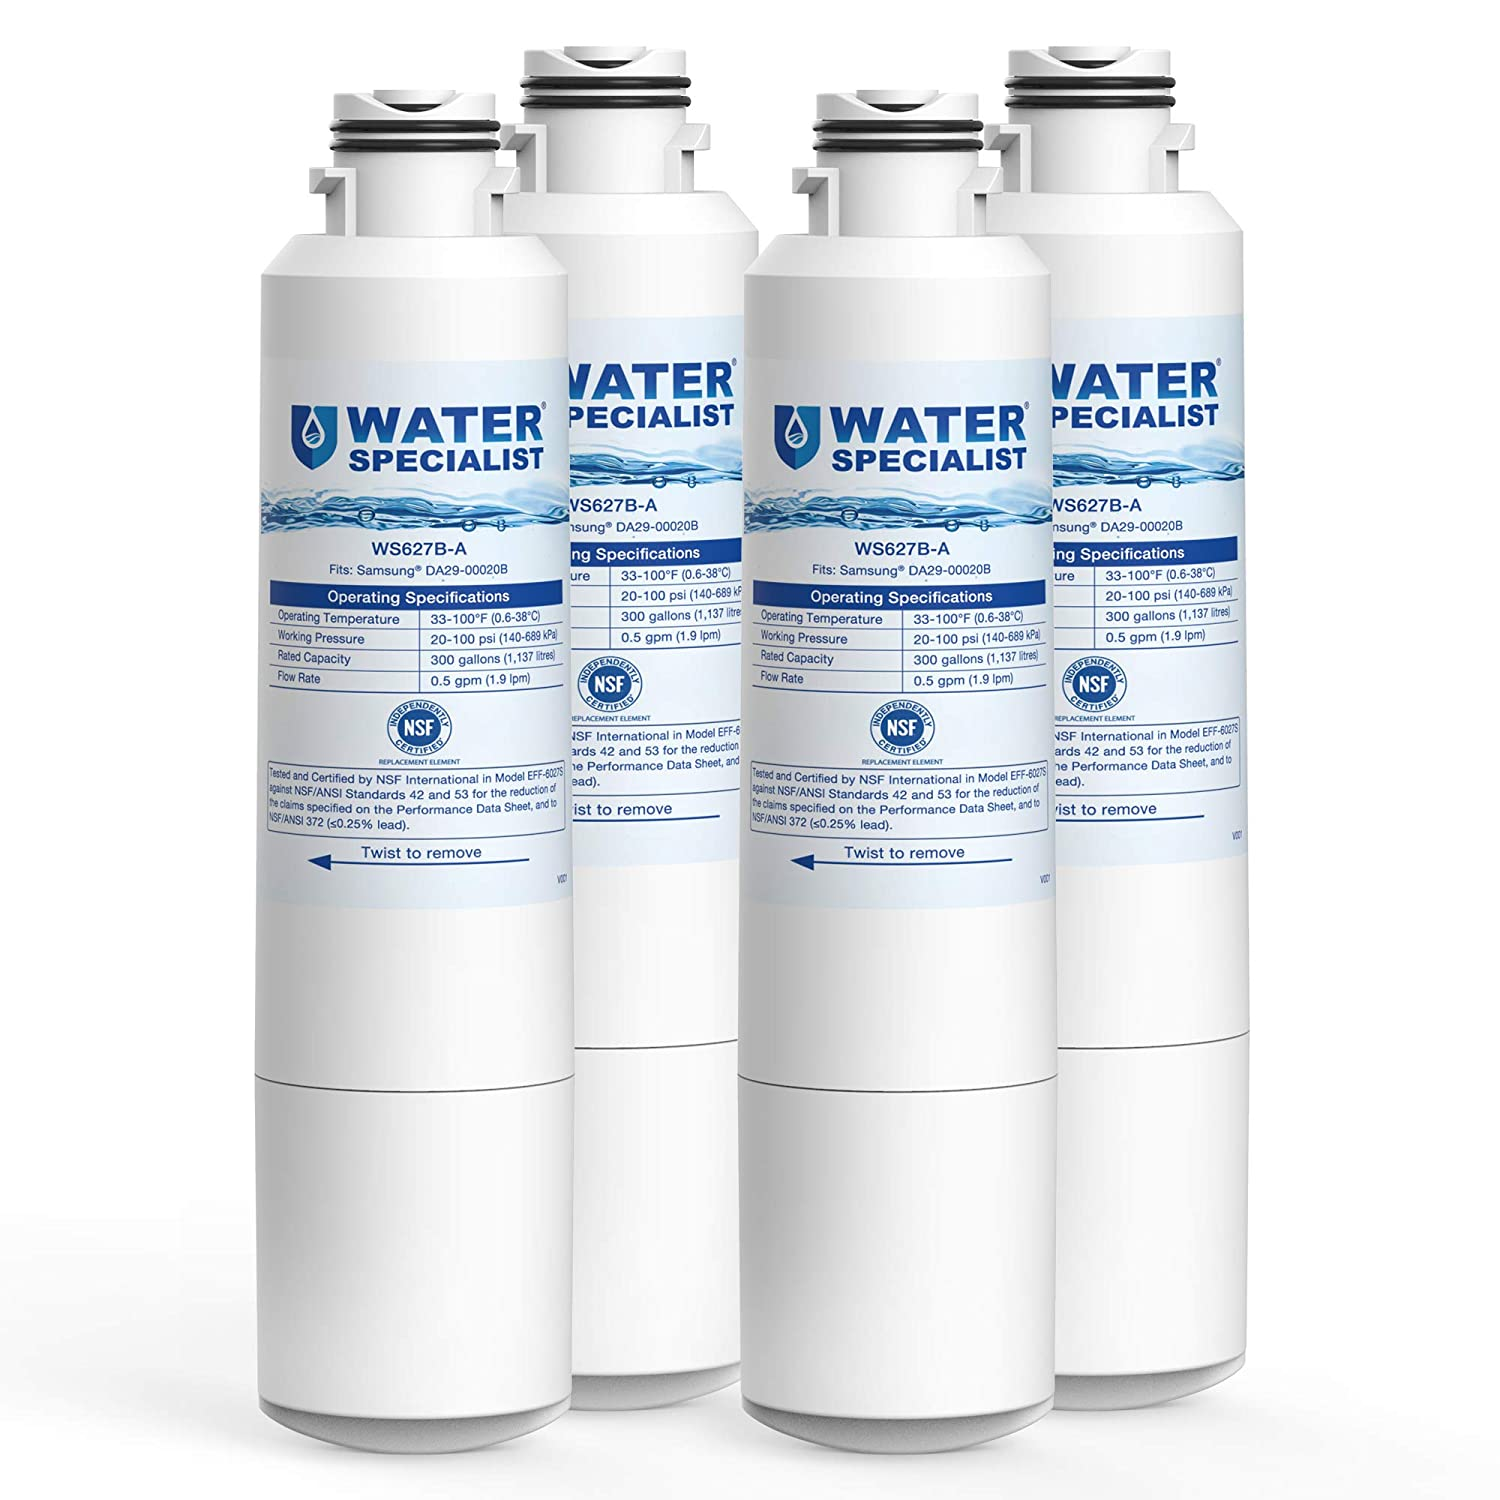 Waterspecialist NSF 53&42 Certified DA29-00020B Refrigerator Water Filter, Replacement for Samsung HAF-CIN, HAF-CIN/EXP, DA29-00020A/B, DA97-08006A, DA2900020B, RF28HMEDBSR, RF4287HARS (Pack of 4)